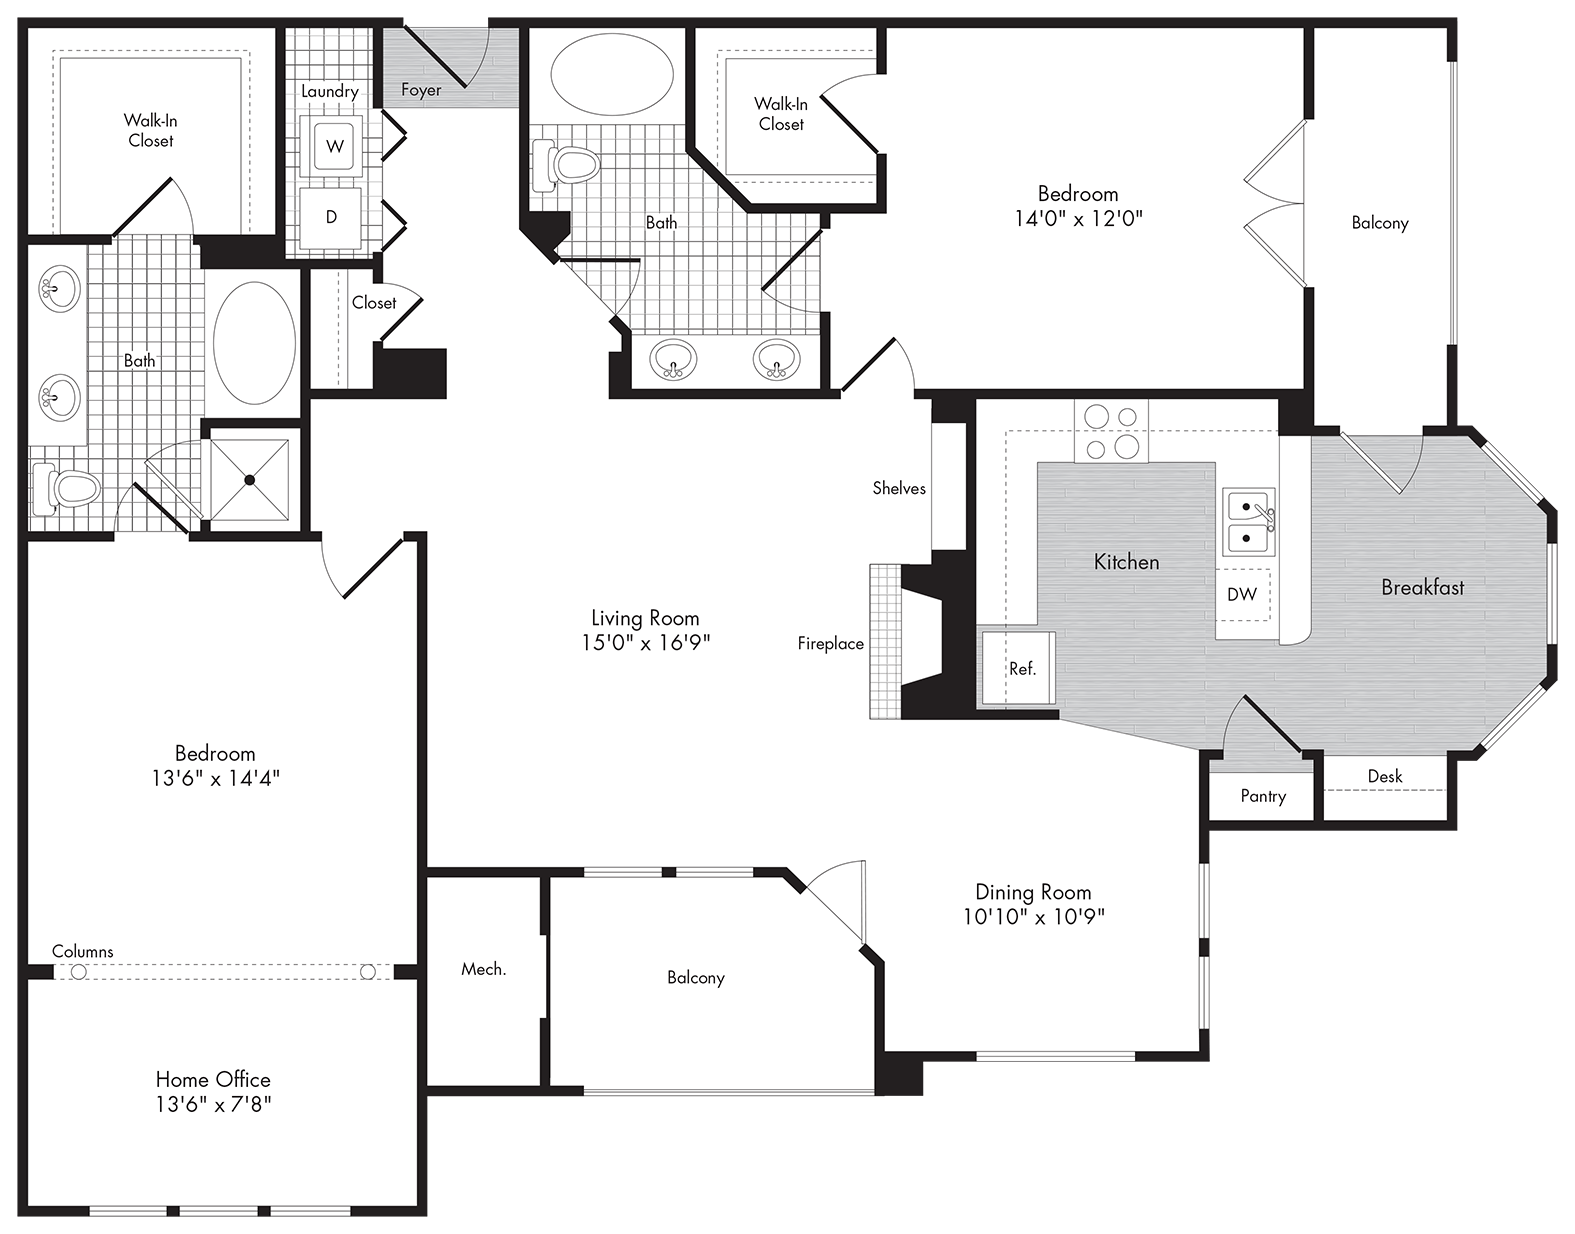 Floor Plans Greenwich Place Apartments